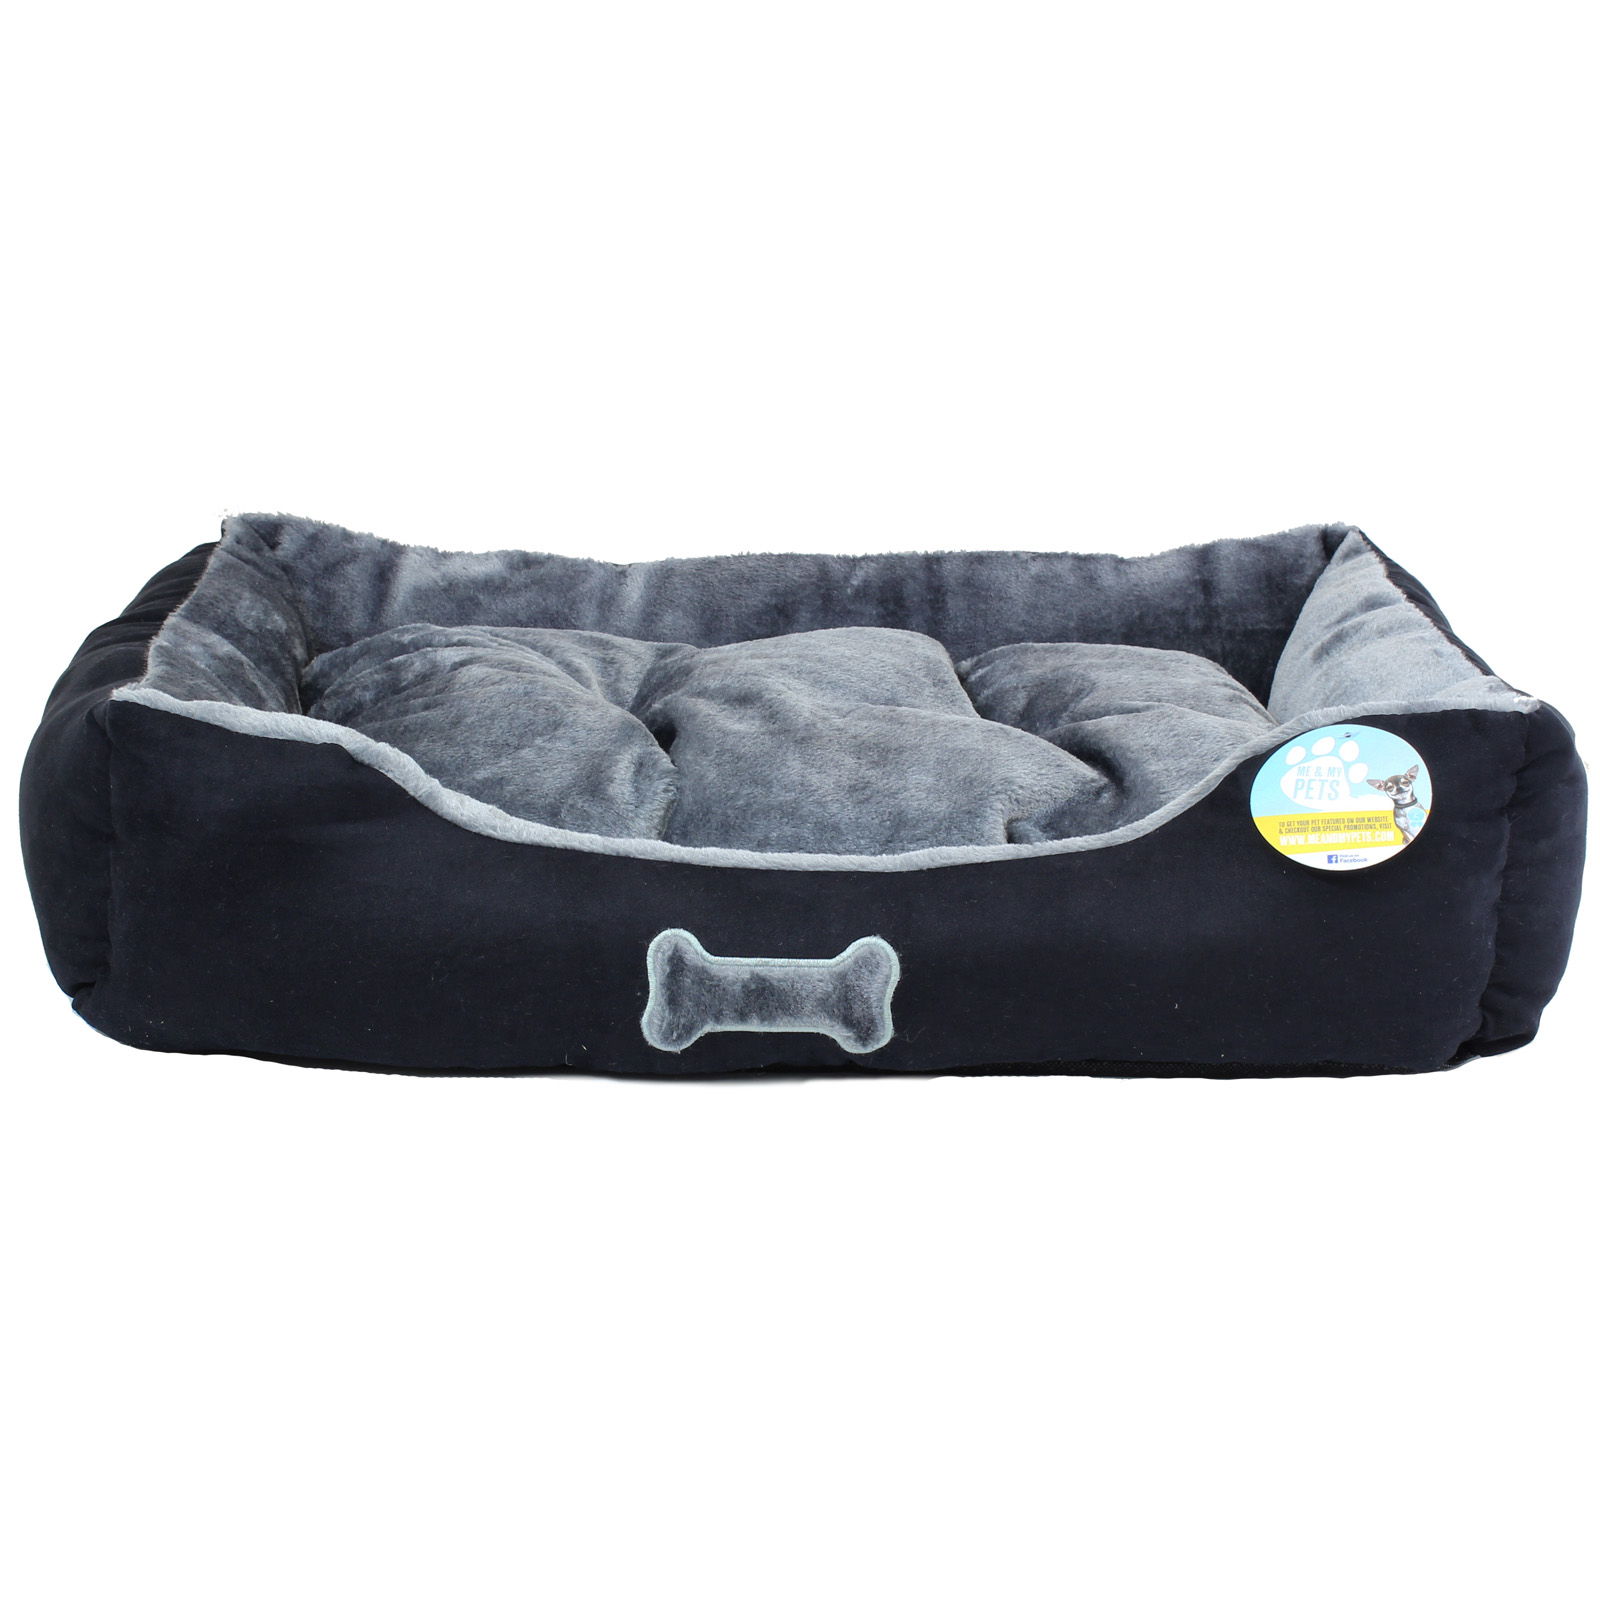 me my super soft dog puppy pet bed small medium large luxury comfy s m l new ebay. Black Bedroom Furniture Sets. Home Design Ideas